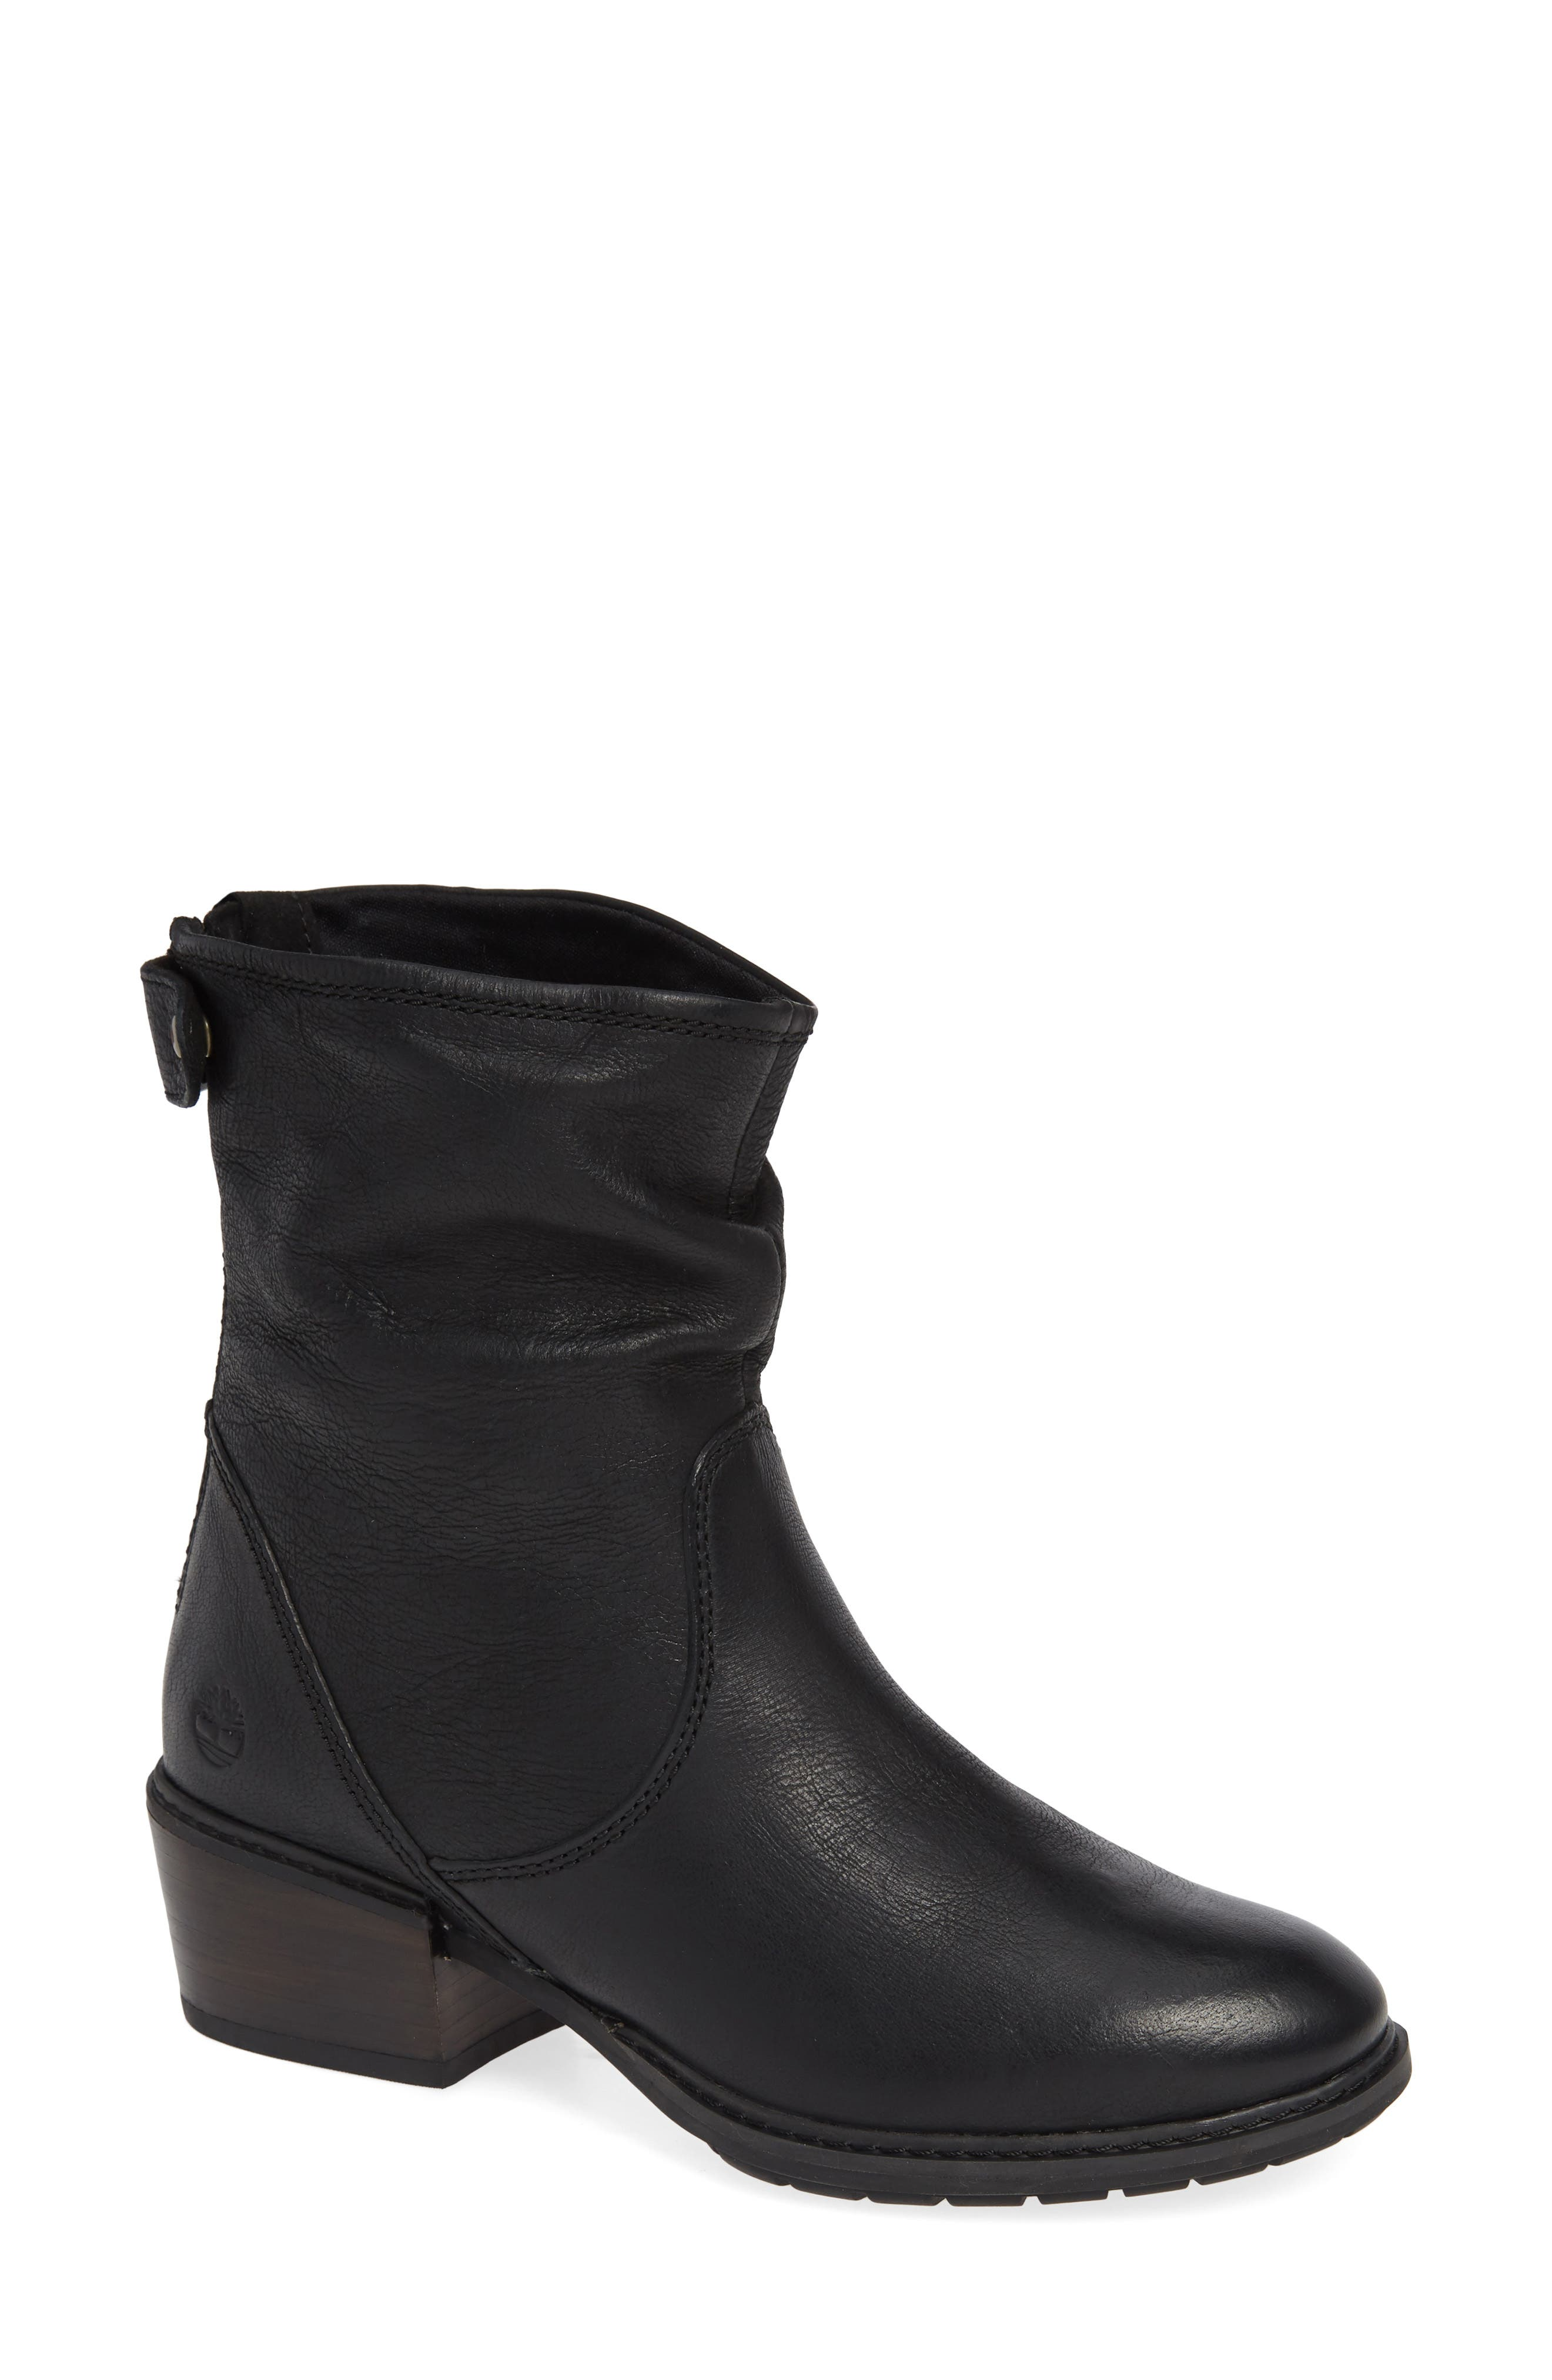 Sutherlin Bay Water Resistant Bootie,                         Main,                         color, JET BLACK LEATHER